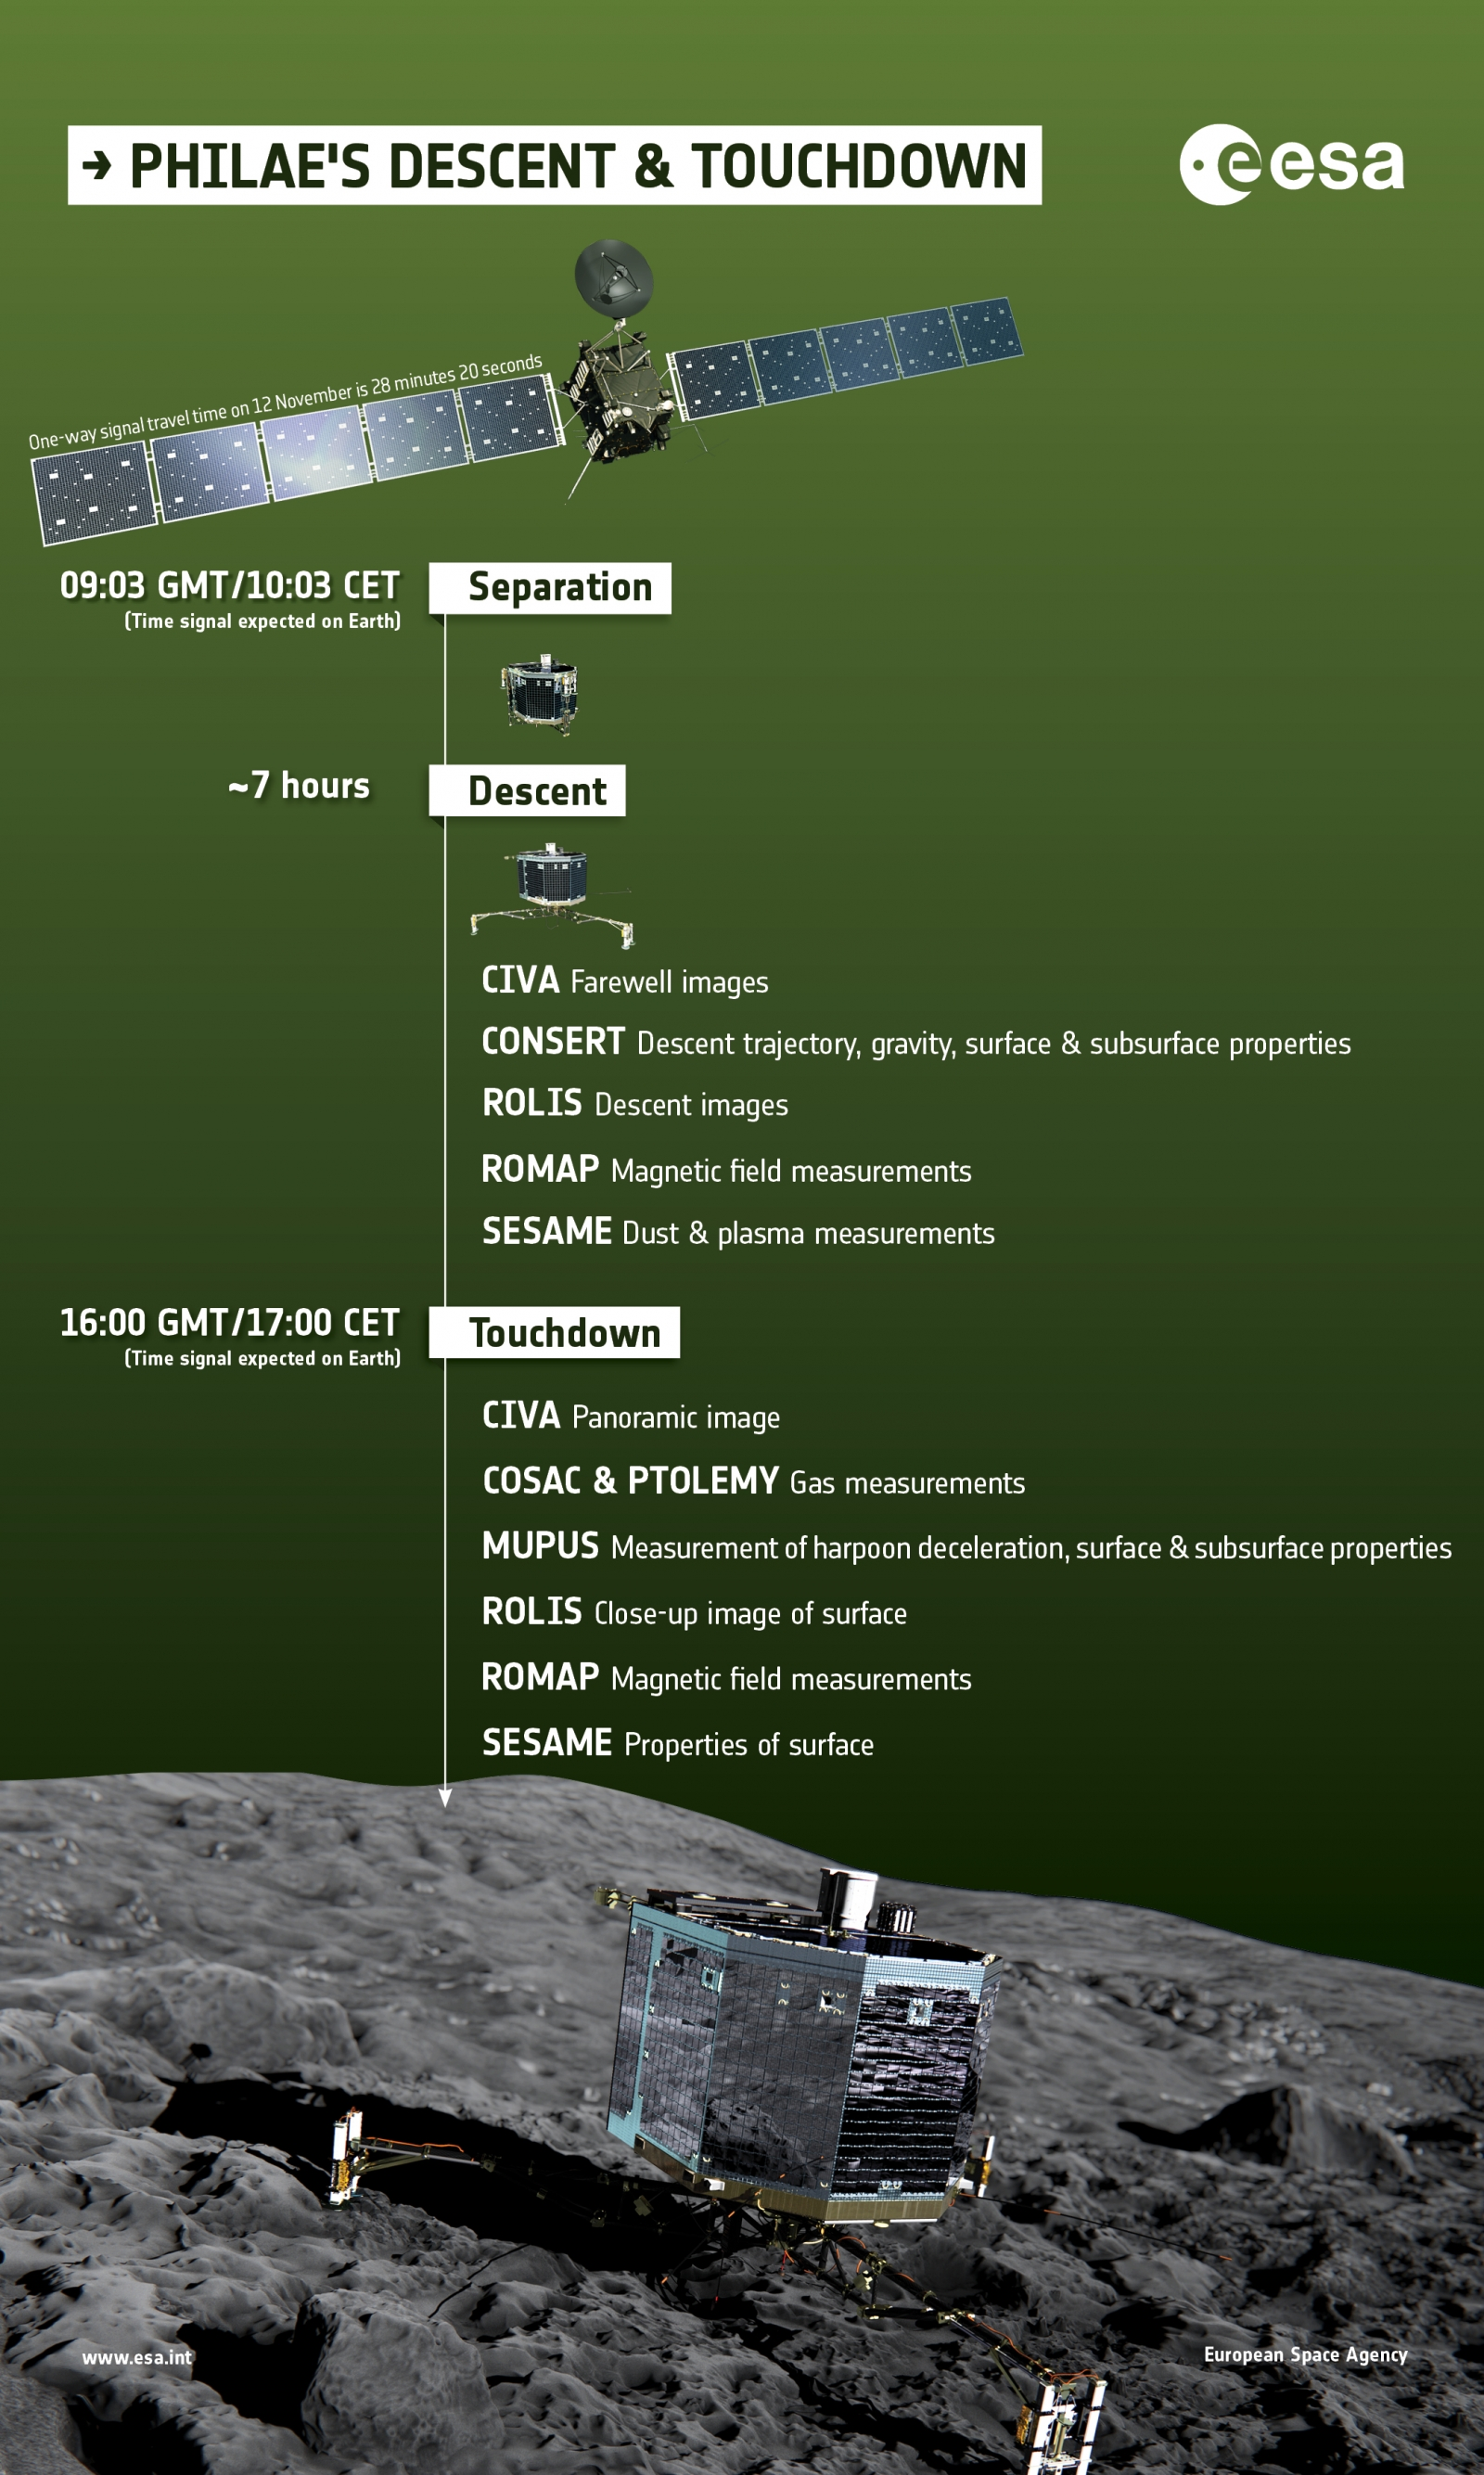 Rosetta Mission: Timeline of Events Planned for ESA's ...